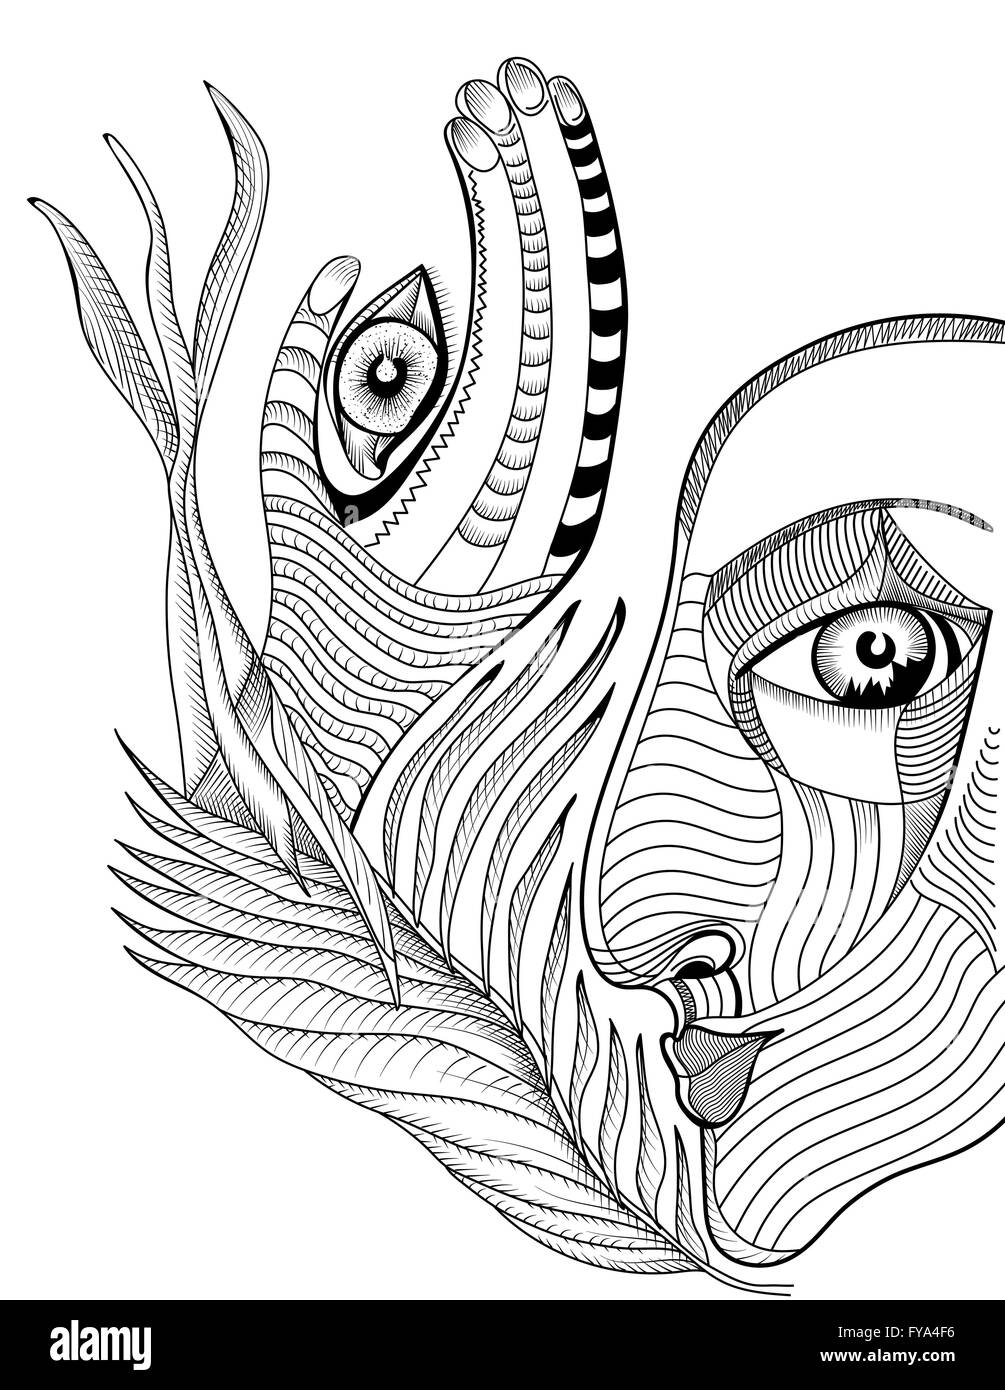 Abstract Face Line Drawing : Abstract surreal face and hand with mehndi tattoo